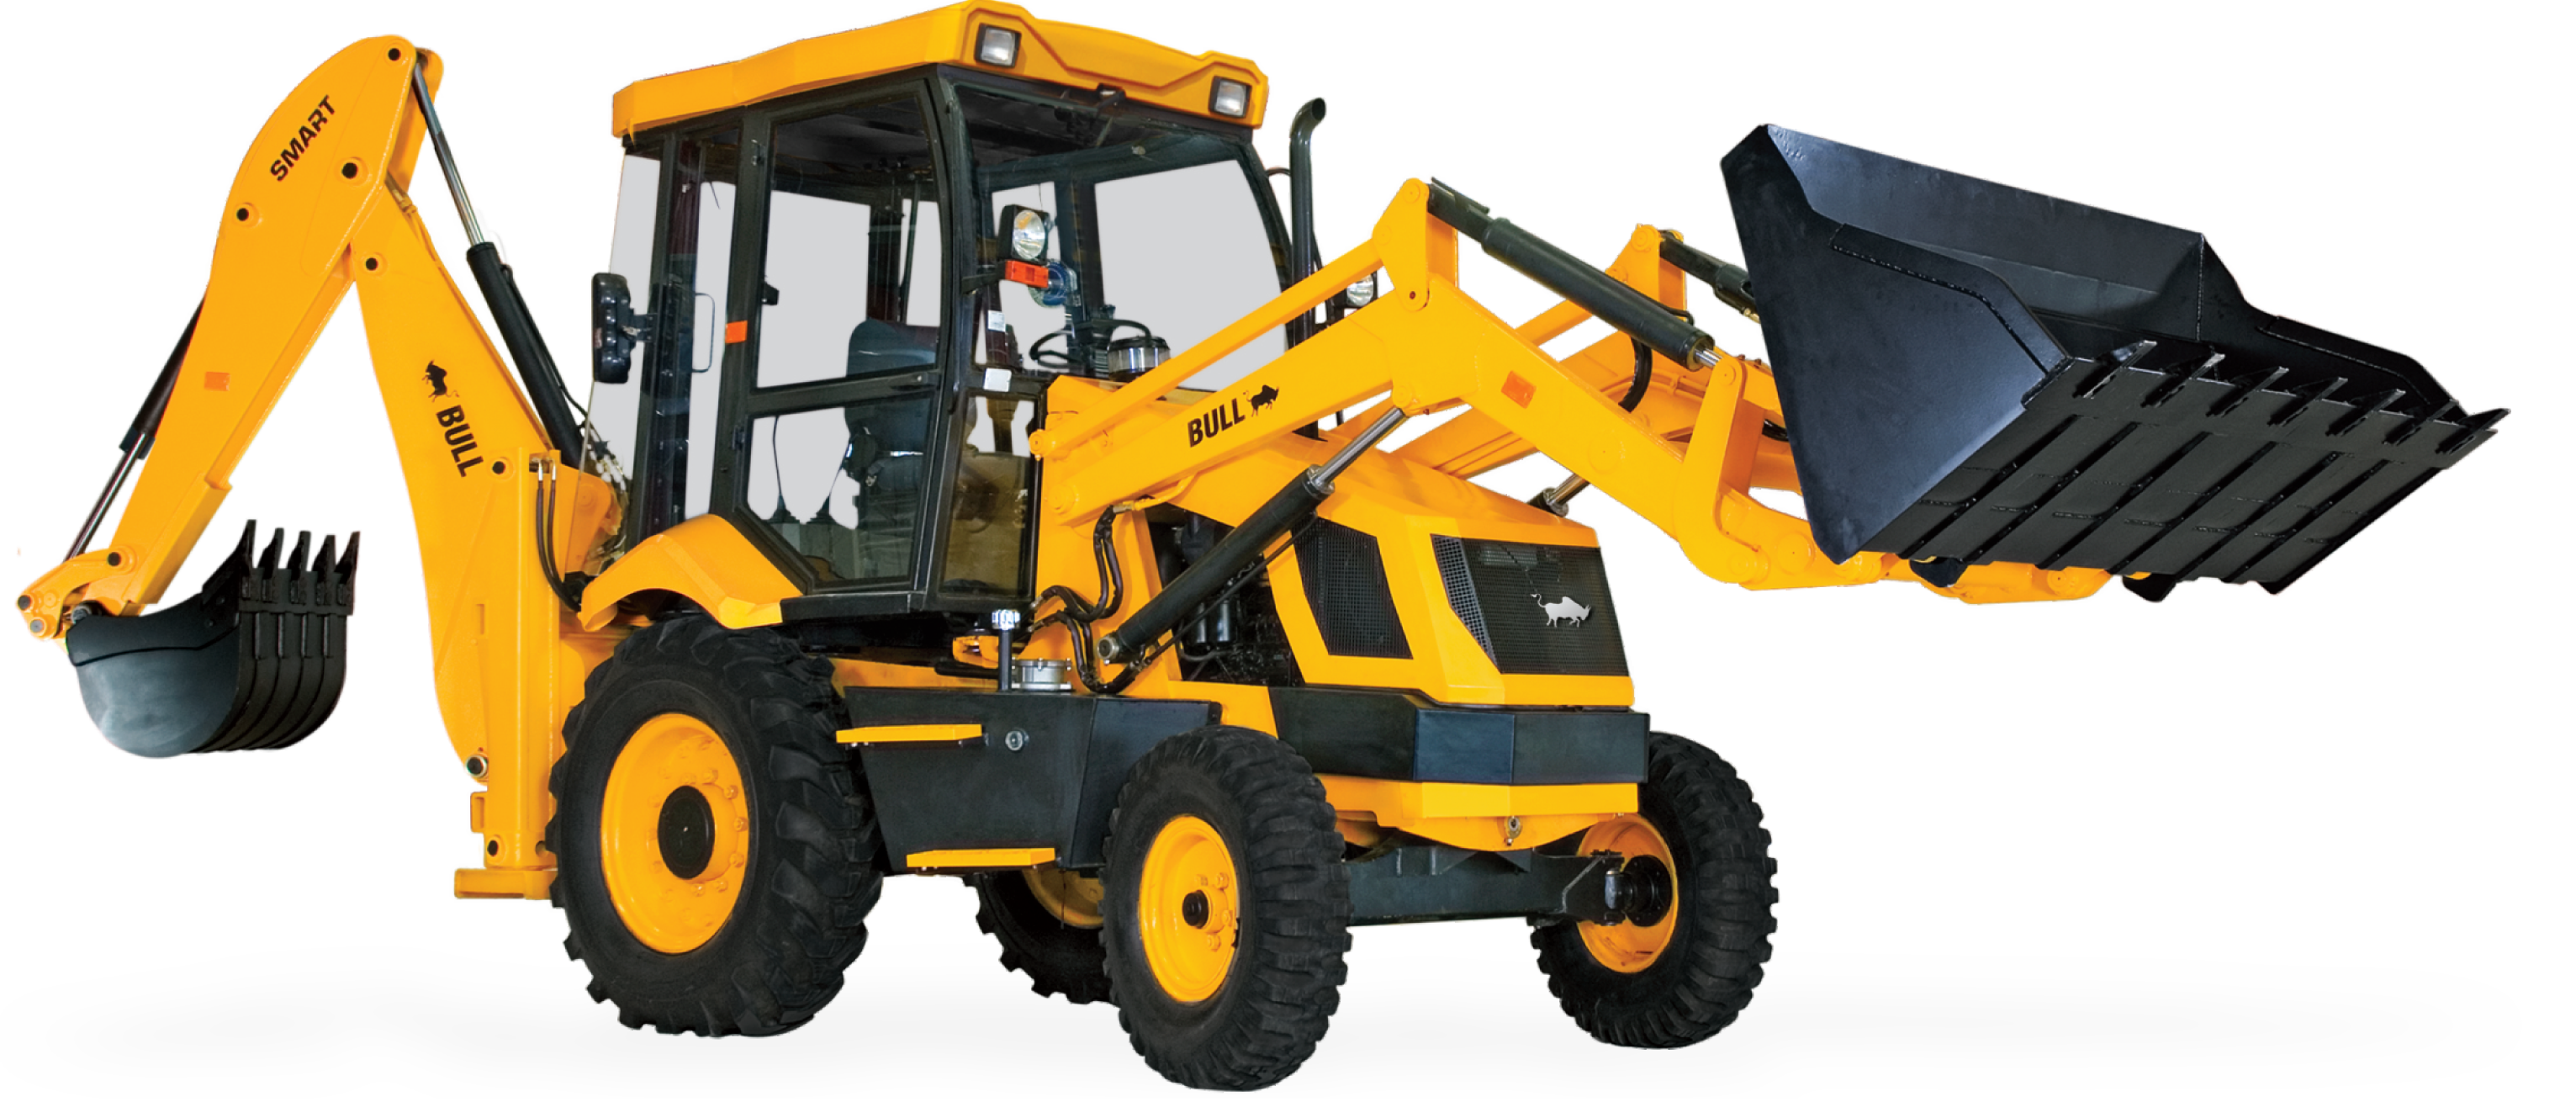 Bull Smart - Backhoe Loader - Cliparts.co